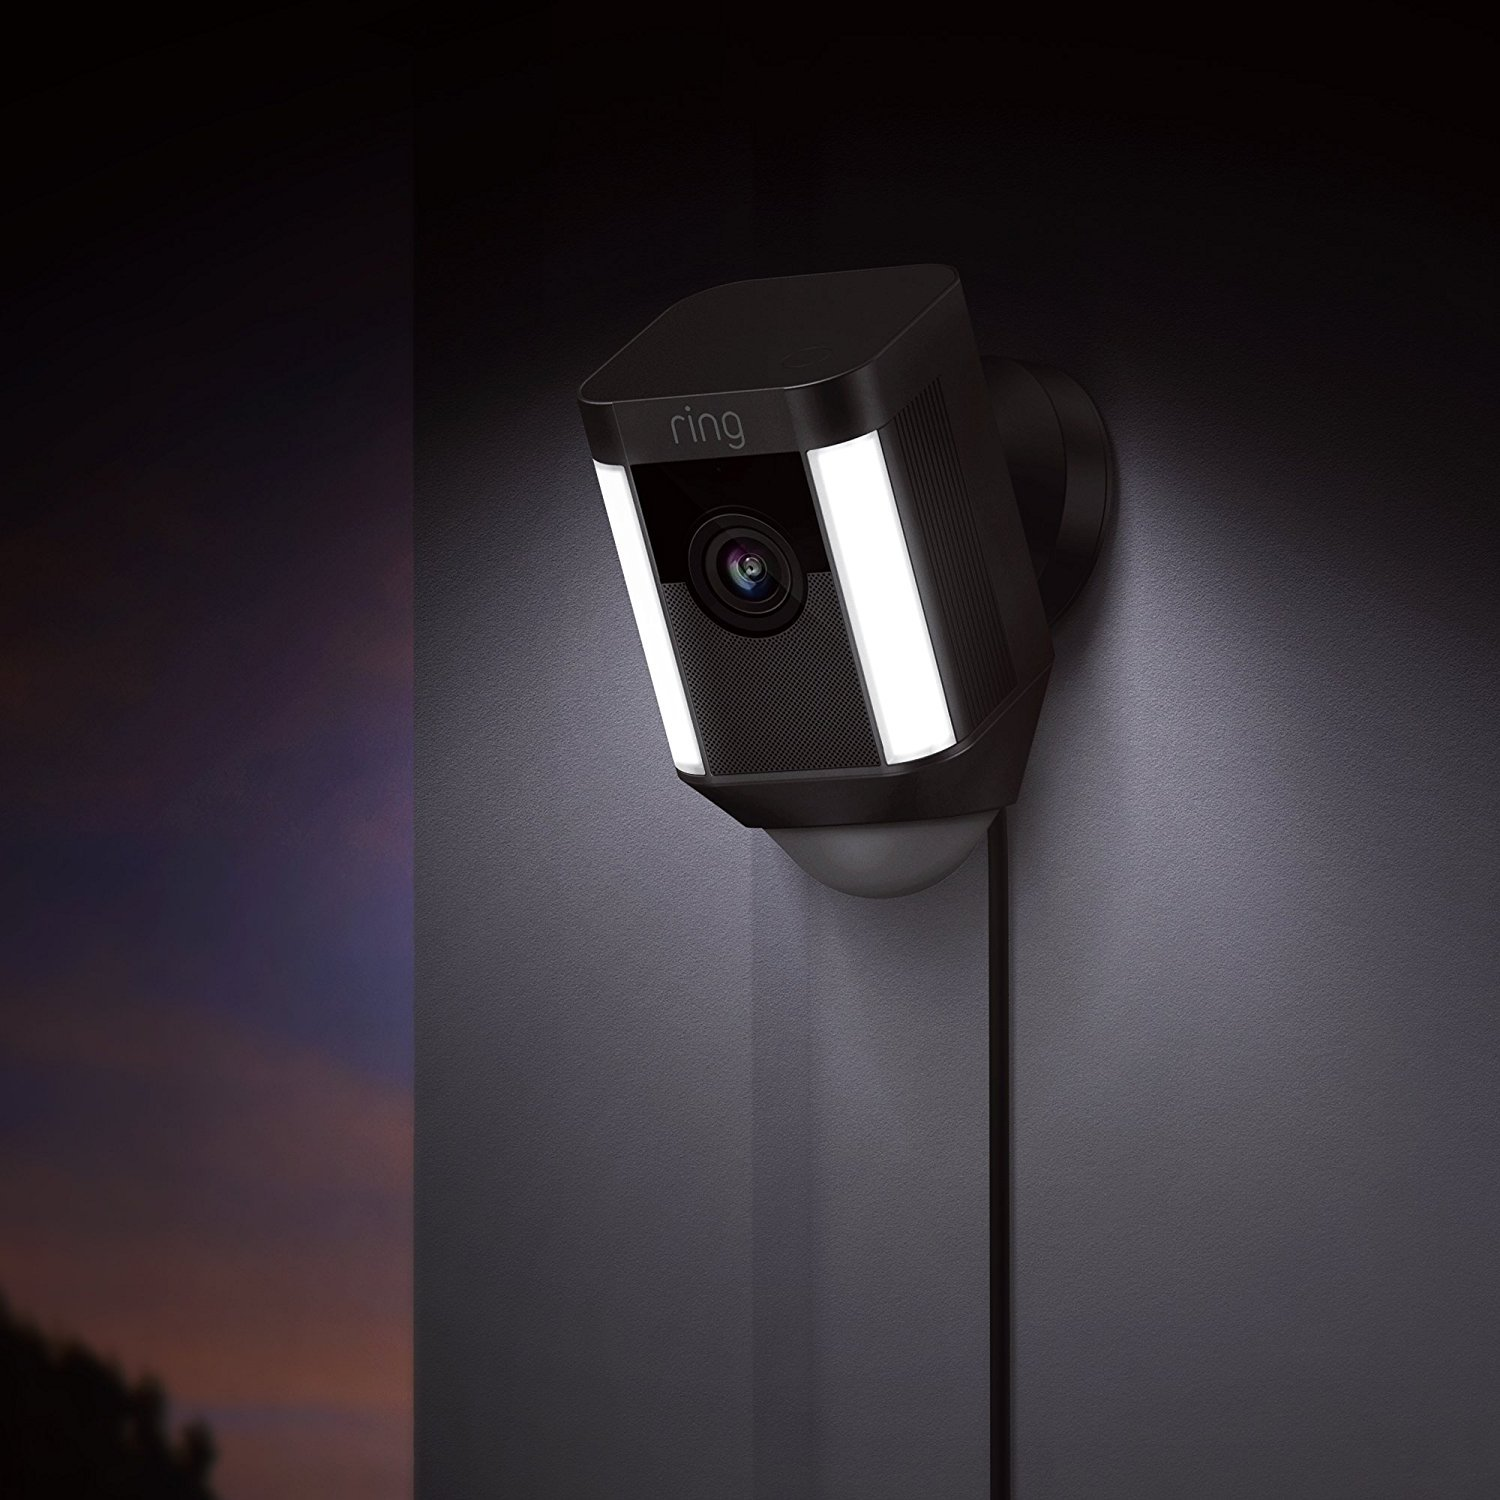 Ring Spotlight Cam Wired | Cámara de seguridad HD con foco LED, alarma, comunicación bidireccional, enchufe UE